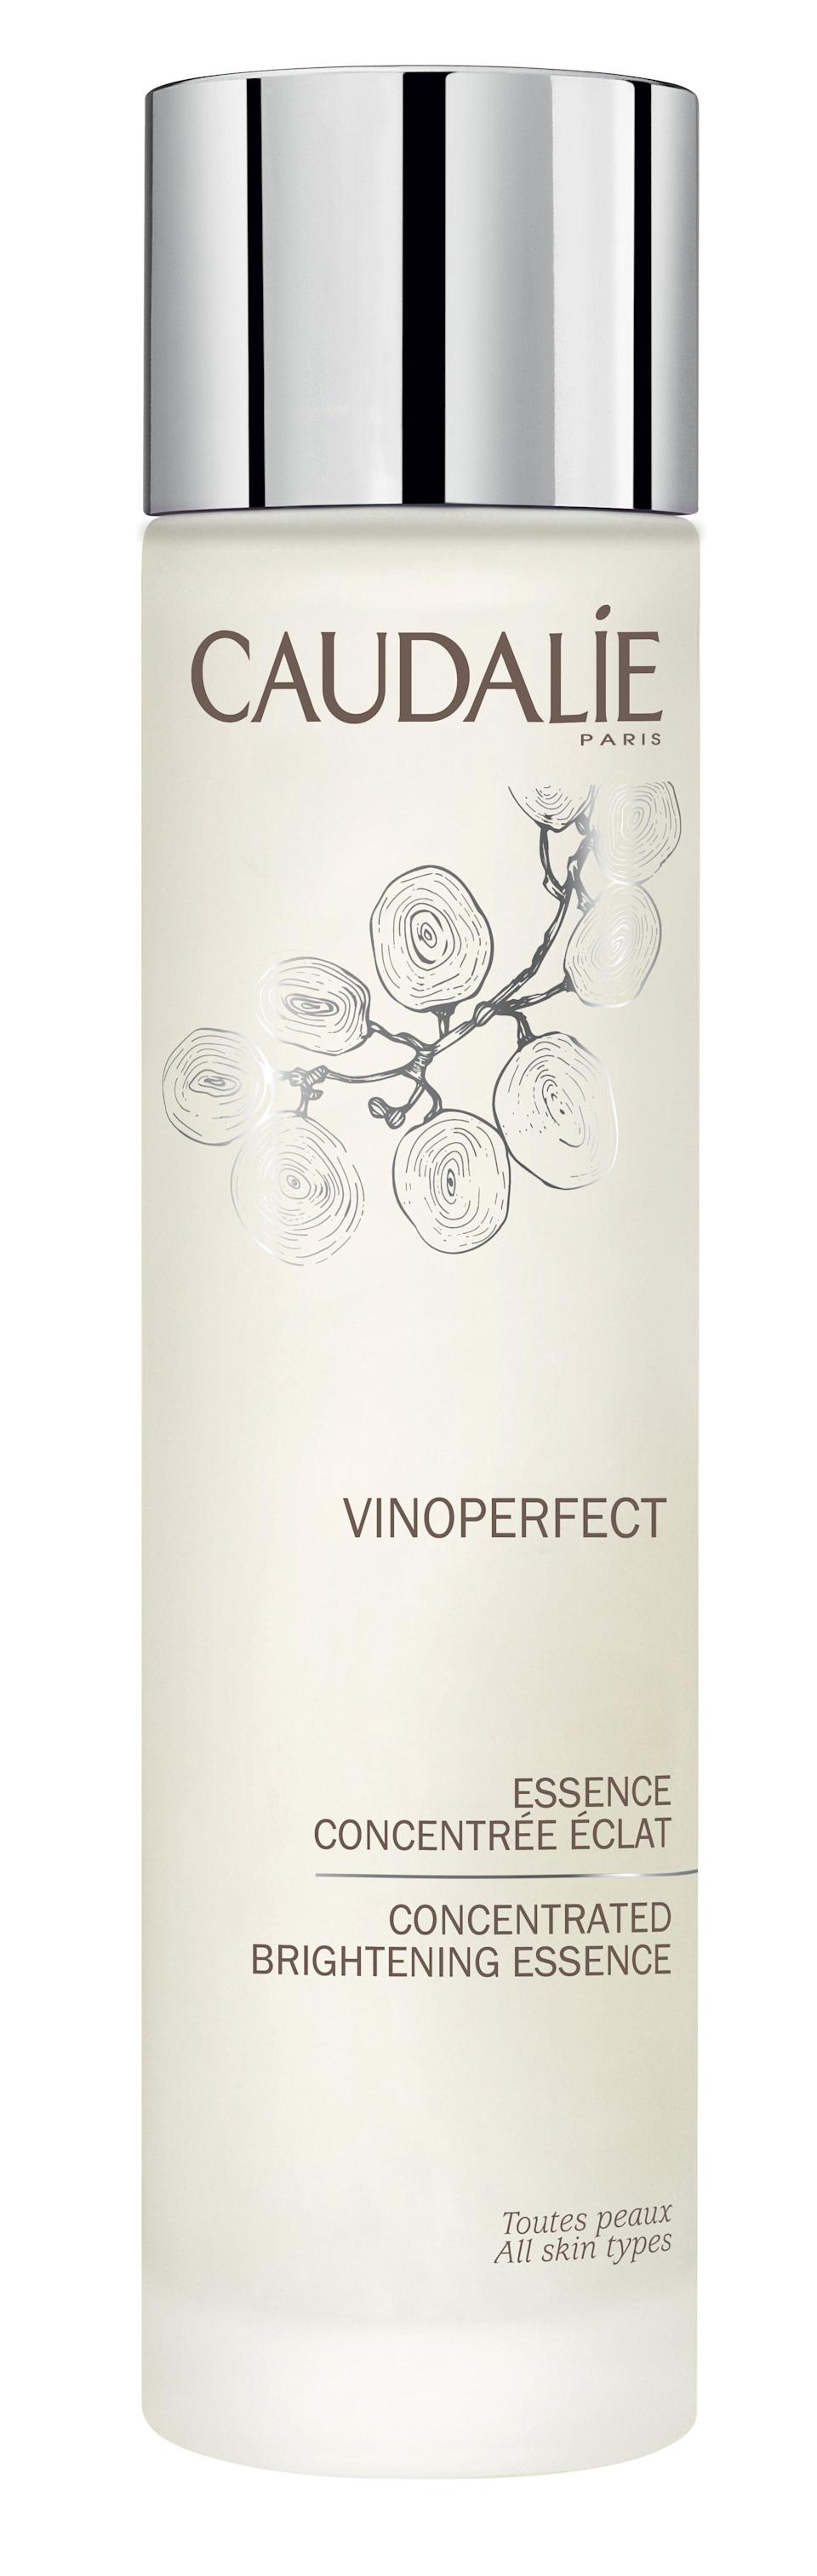 <p>If you're looking for something to fade dark spots or pigmentation, consider the <span>Caudalie VinoPerfect Concentrated Brightening Essence</span> ($54) the best first step before your serum. It helps prep the skin for the active ingredients, kind of like a peel helps your moisturizer work more effectively. (Don't worry, this doesn't peel your skin.) It includes glycolic acid, and white peony extract to help even out the complexion, plus the brand's signature grape water to soothe and moisturize.</p>